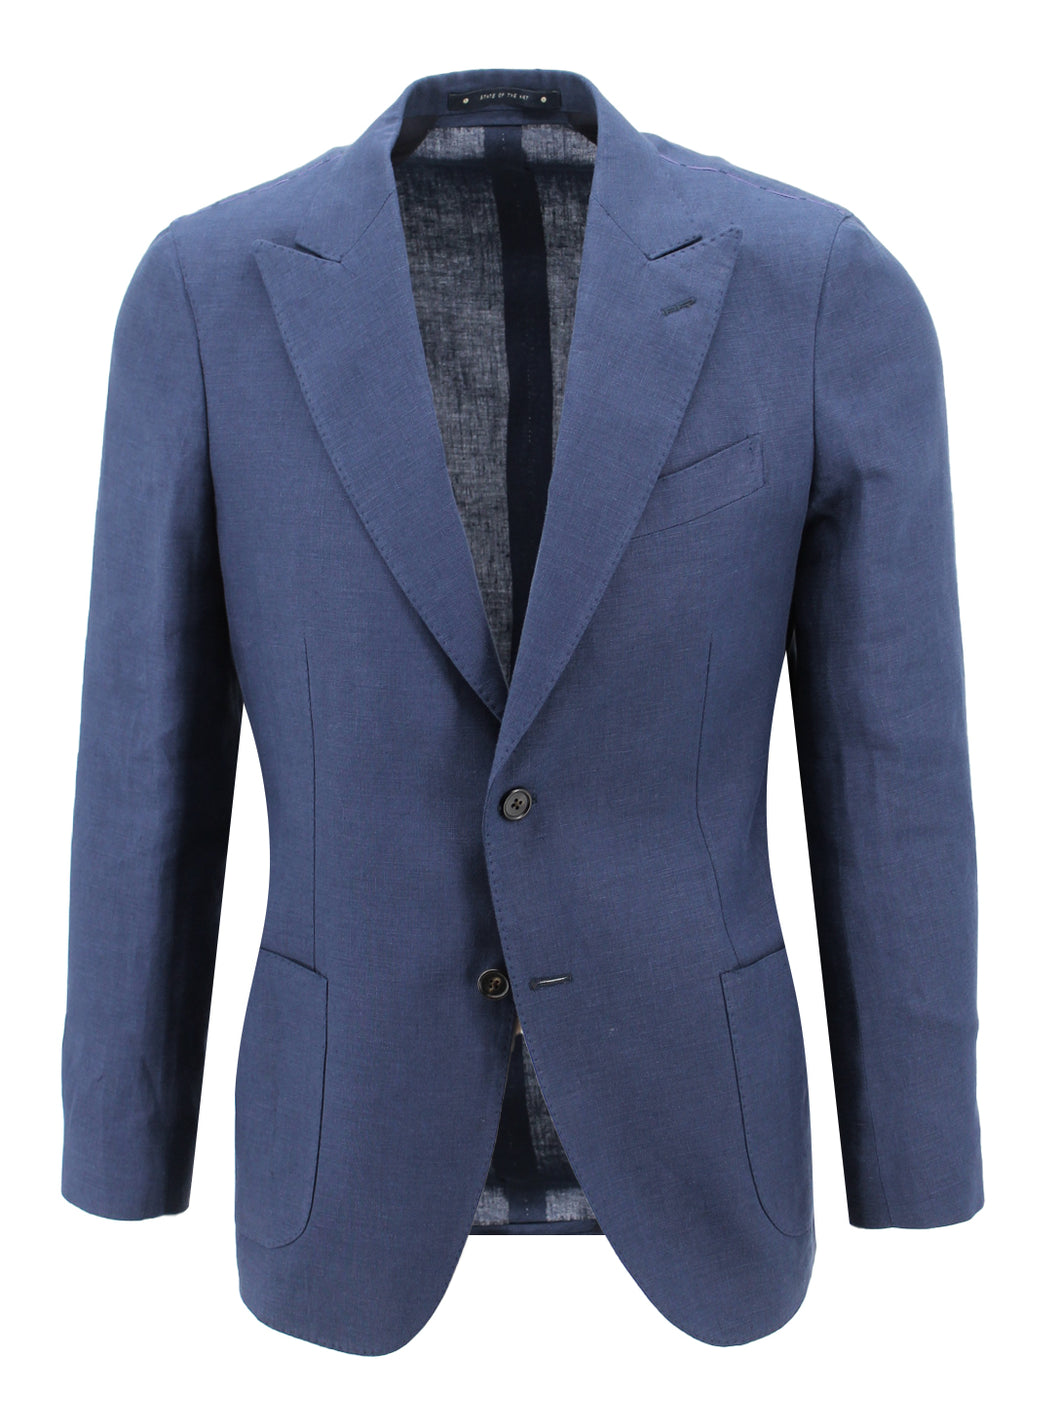 Navy Linen Peak Lapel Suit